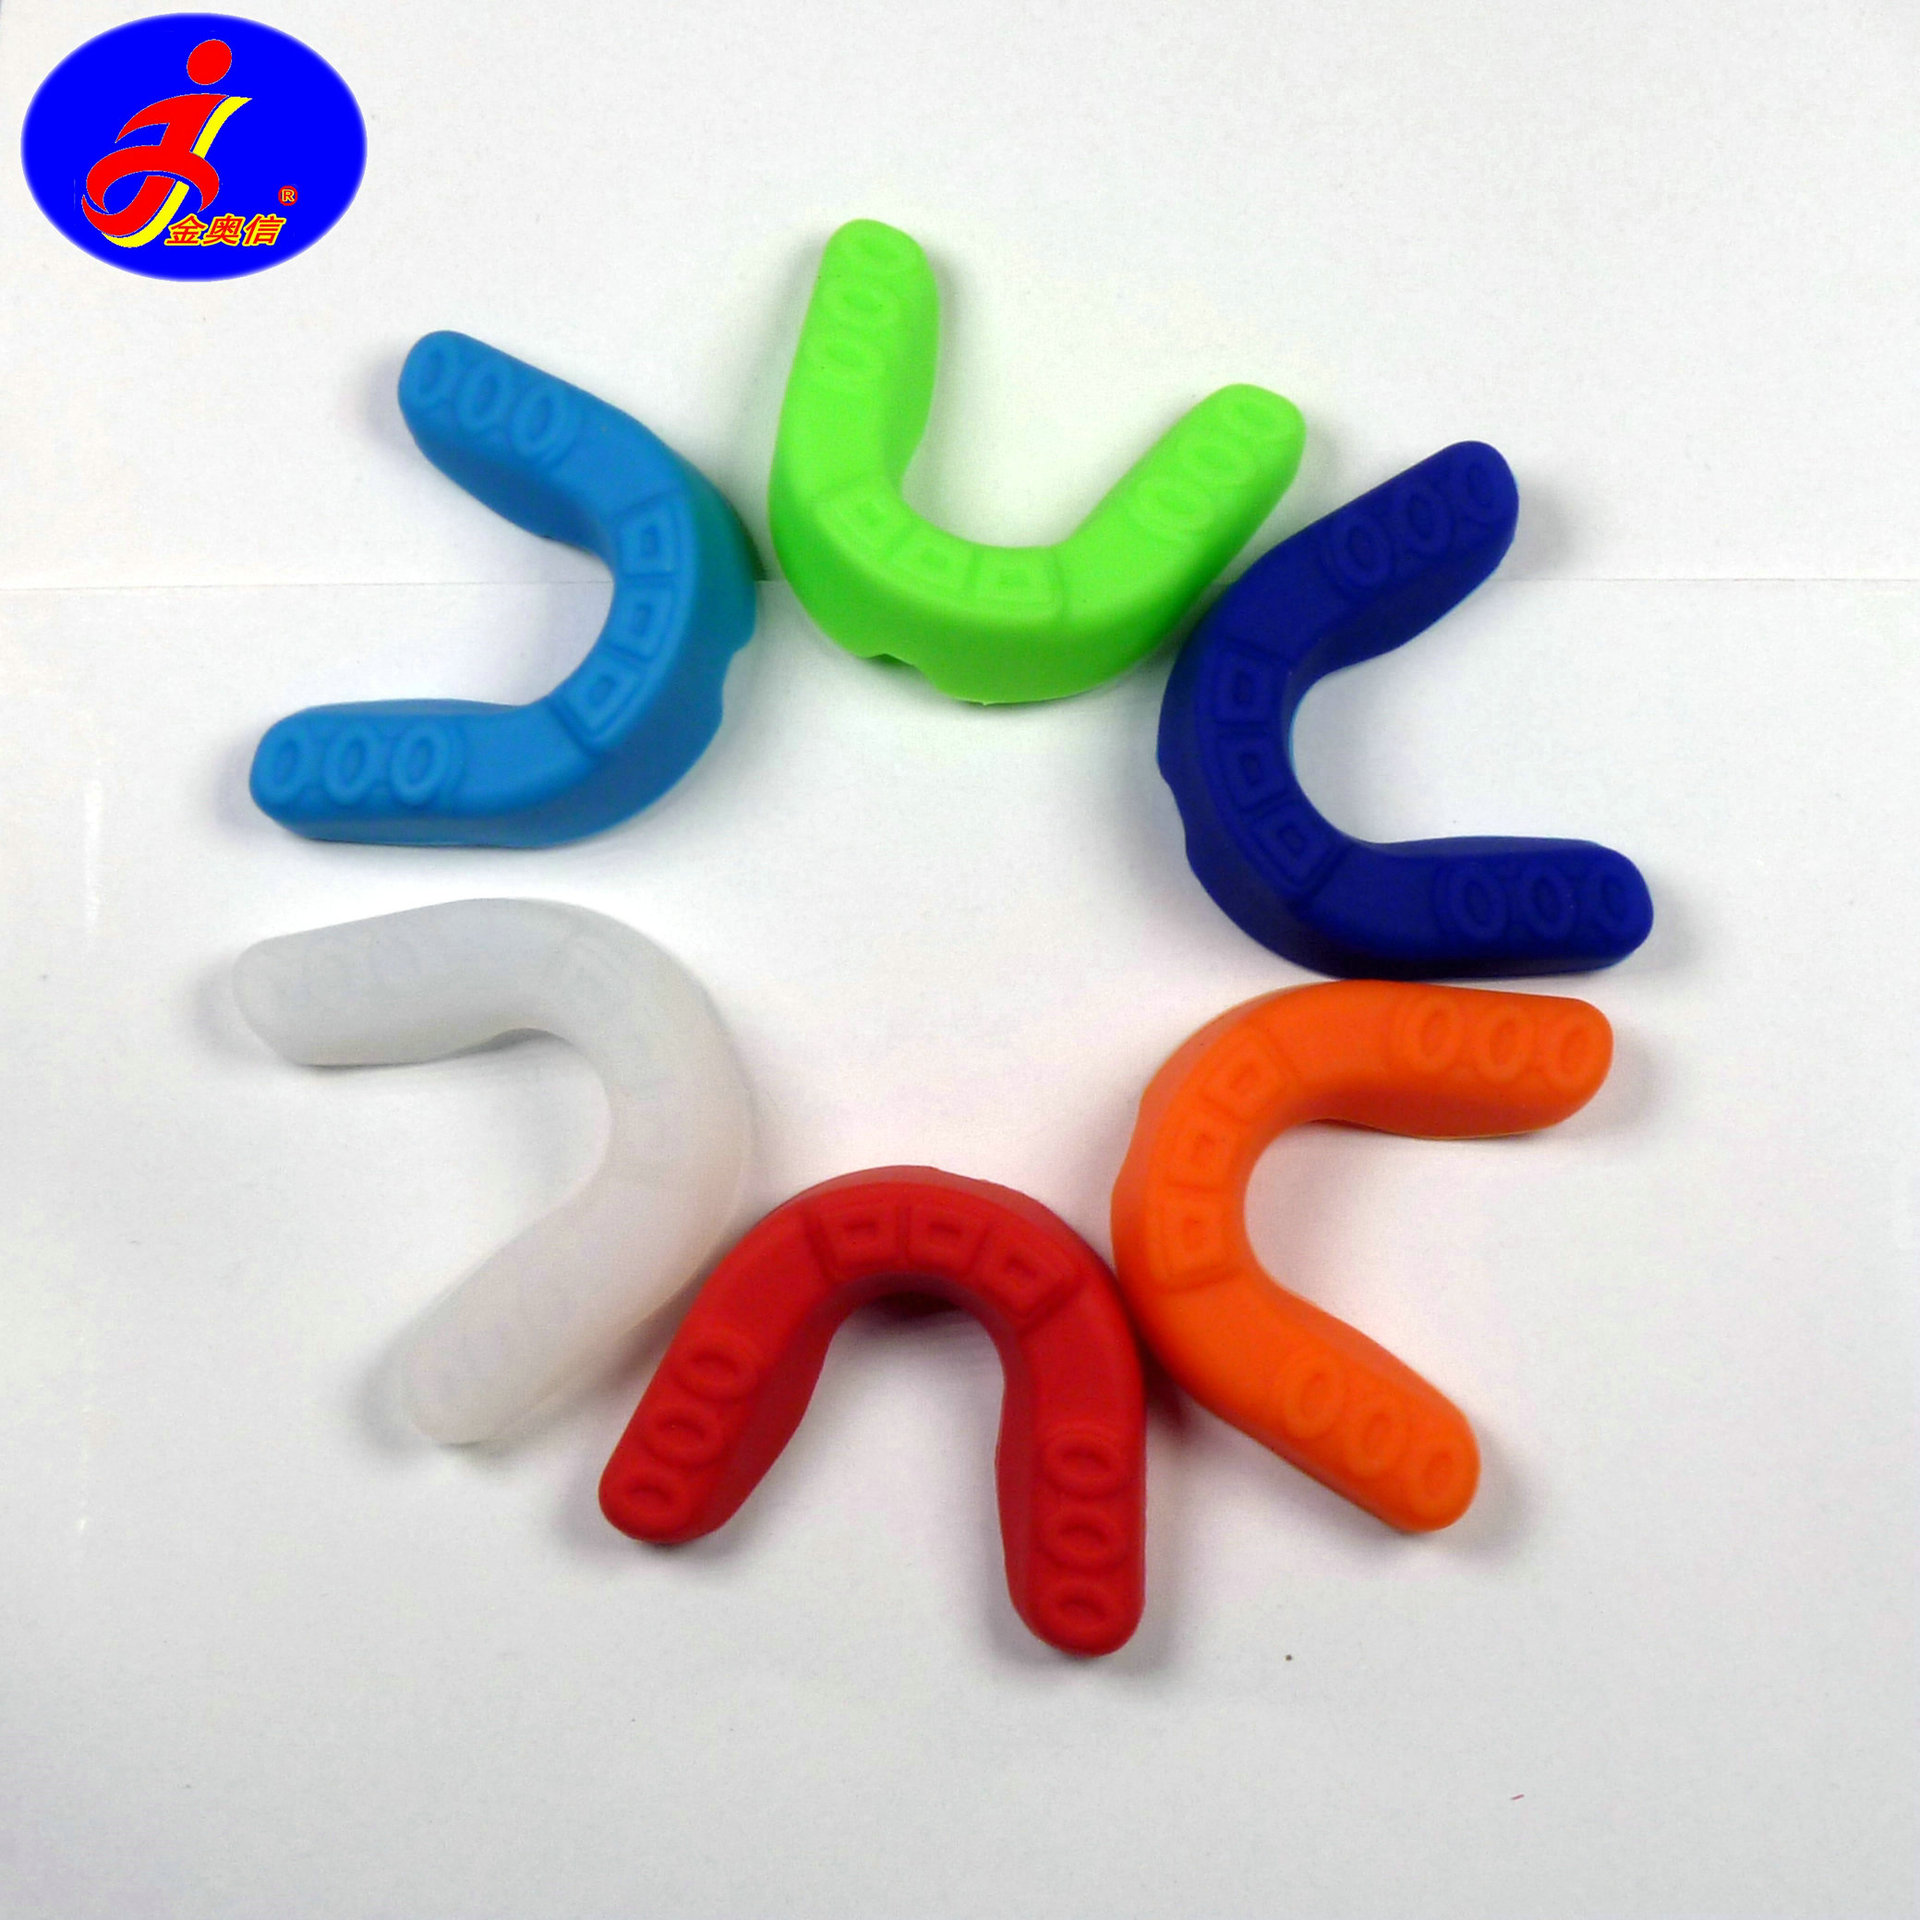 Jinao Xin Silica Gel Sports Mouthguard Hu Ya Tao Hole-Shape-Boxing Sanda Taekwondo Basketball Football